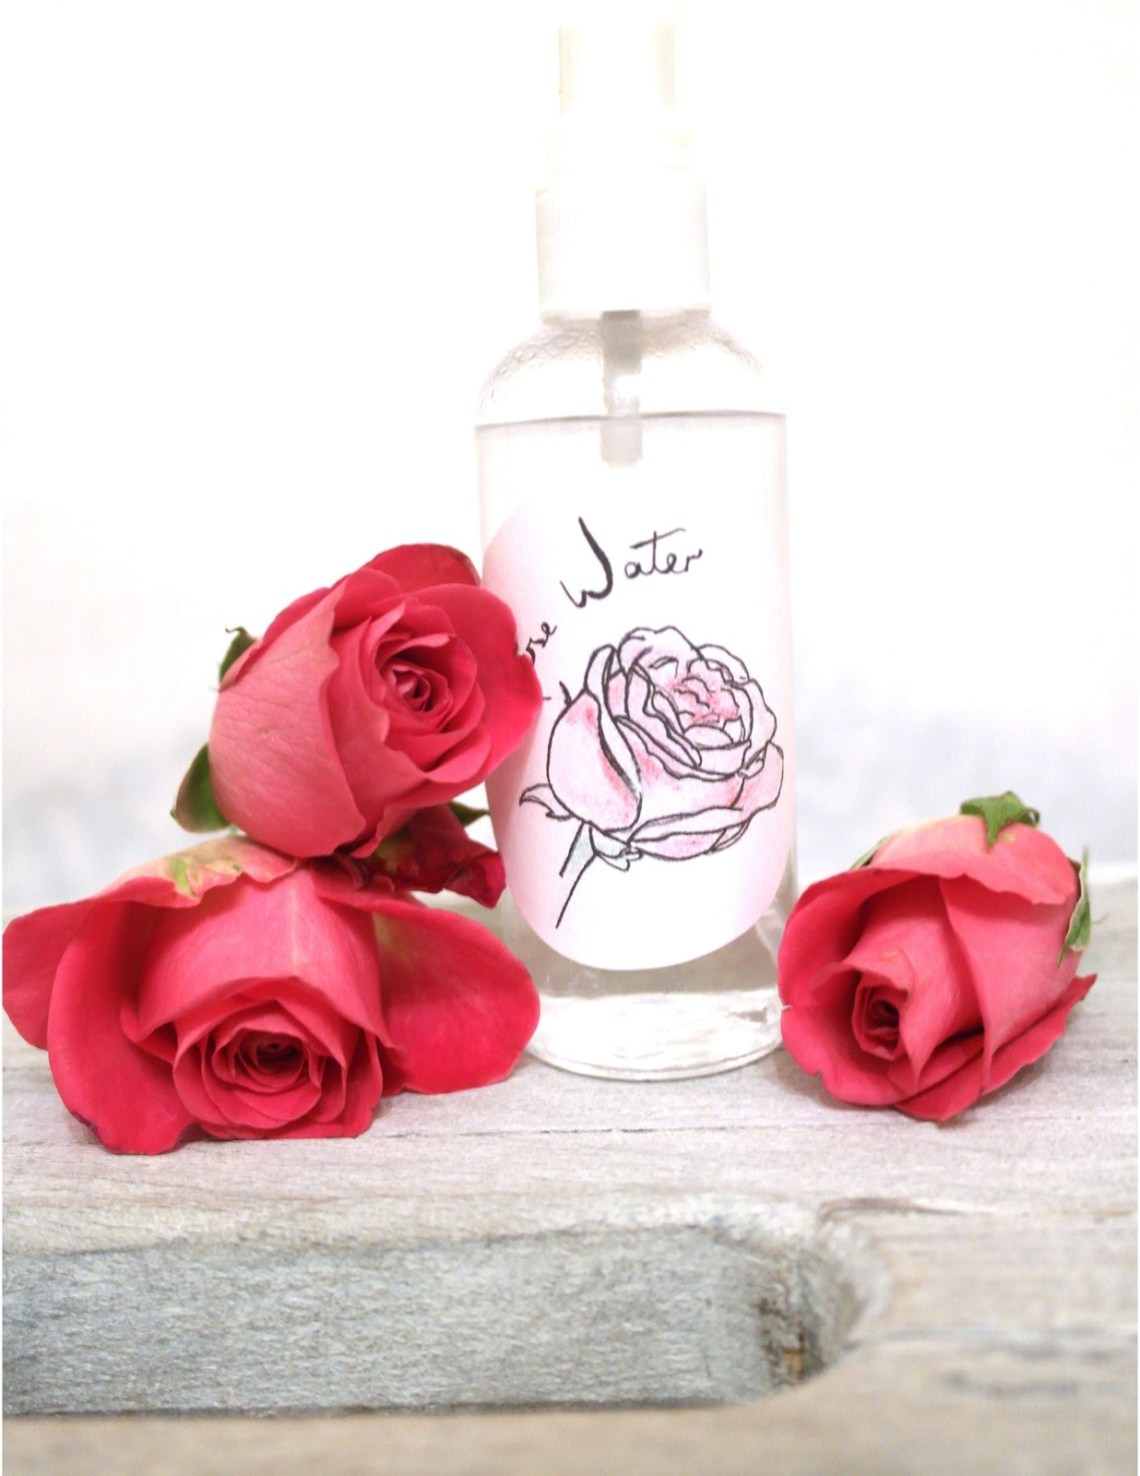 How To Make Your Own Rose Water To Refresh Your Skin- httpusefuldiyprojects.com(6)